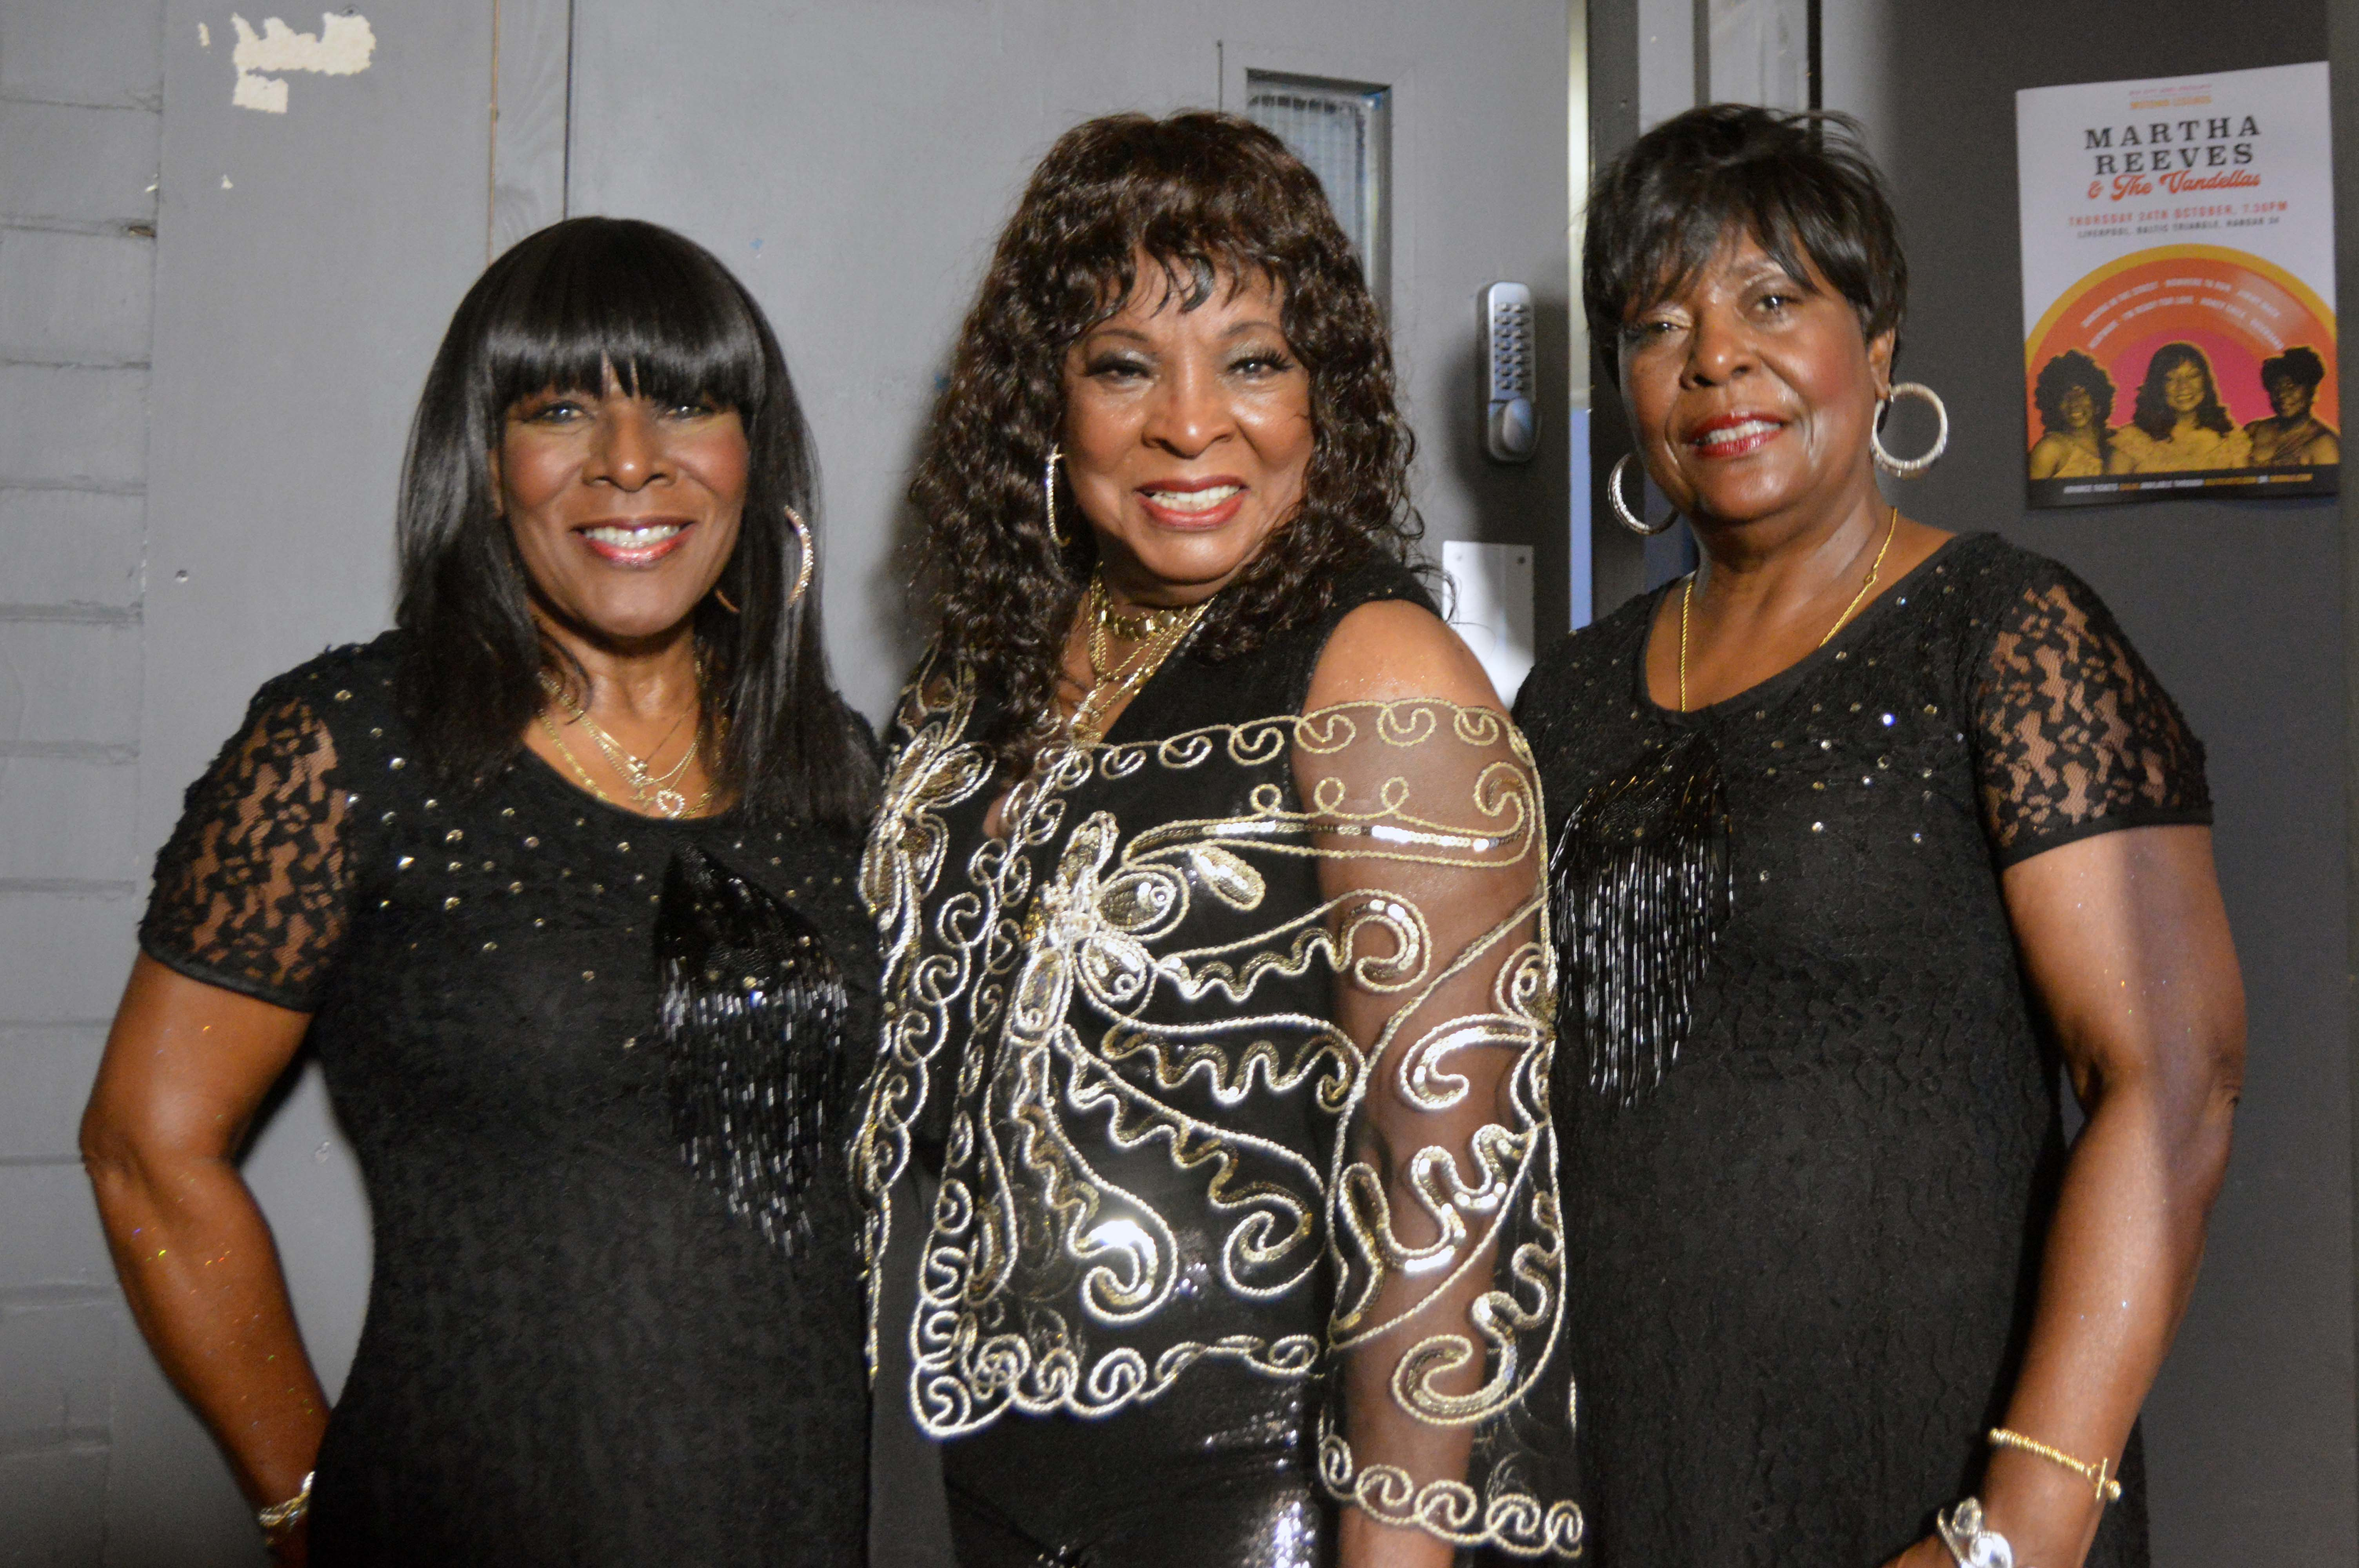 Martha_Reeves_GDougherty_PlanetSlop_02